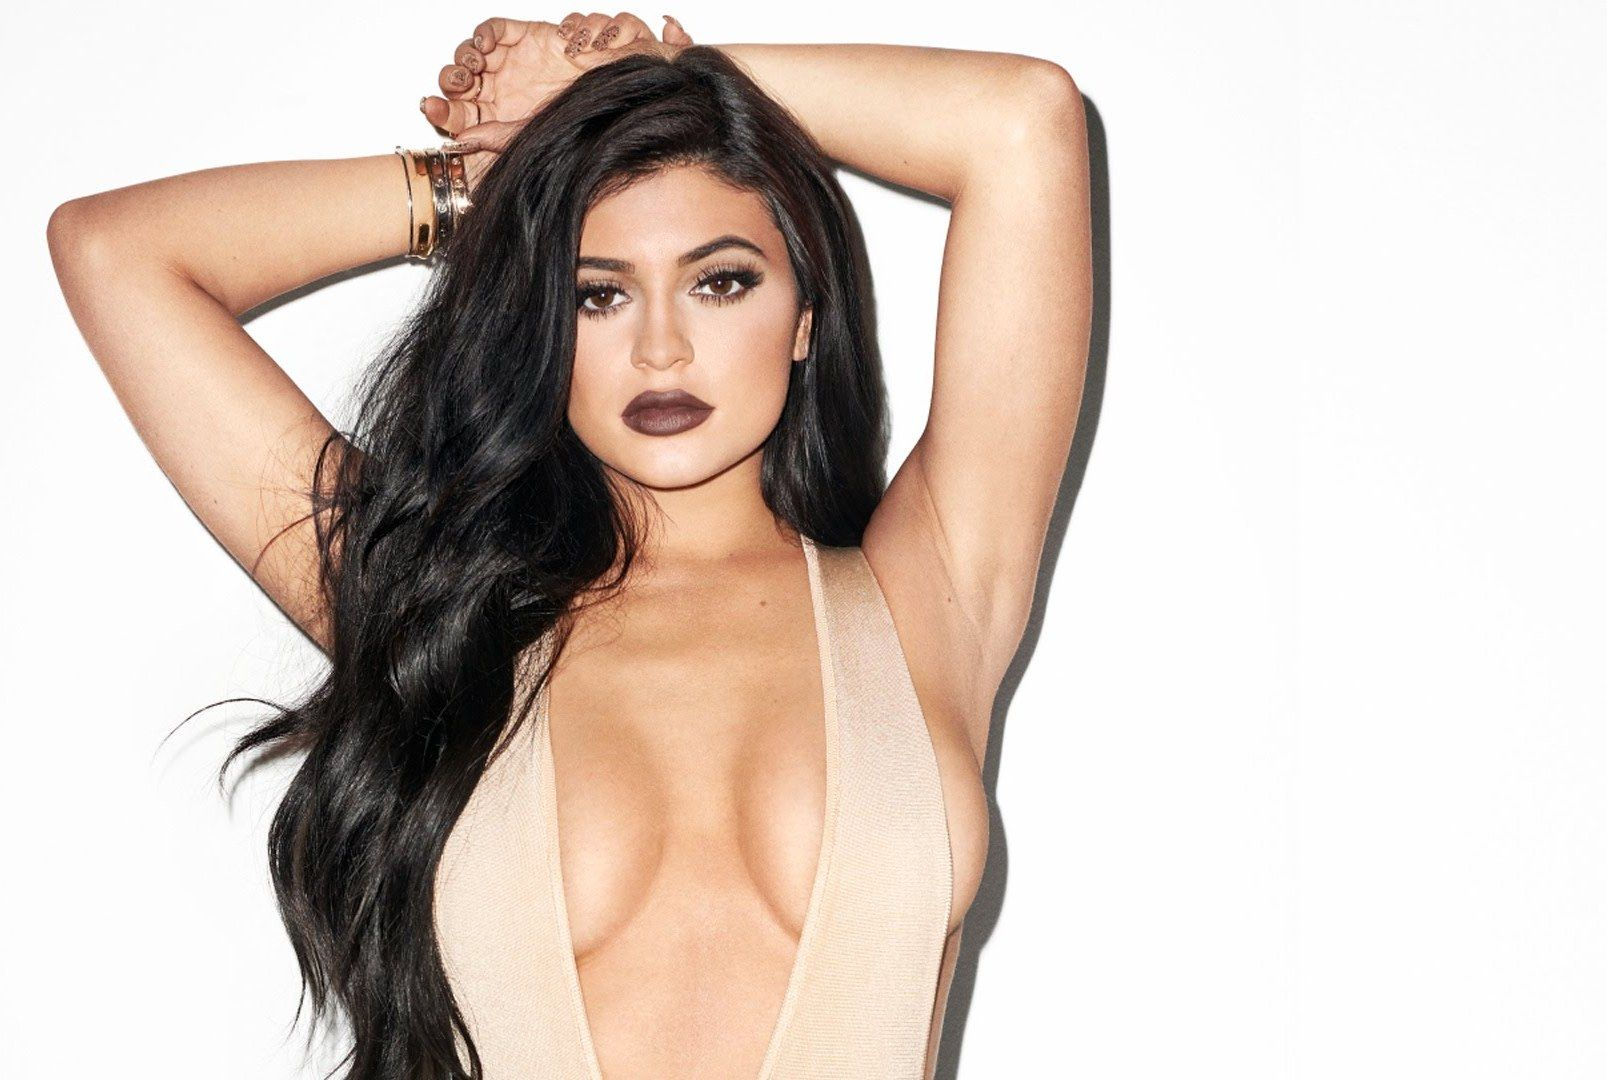 Kylie Jenner Wallpapers 2016 | New HD Wallpapers Download | Kylie jenner hot,  Kylie jenner, Kylie jenner photoshoot